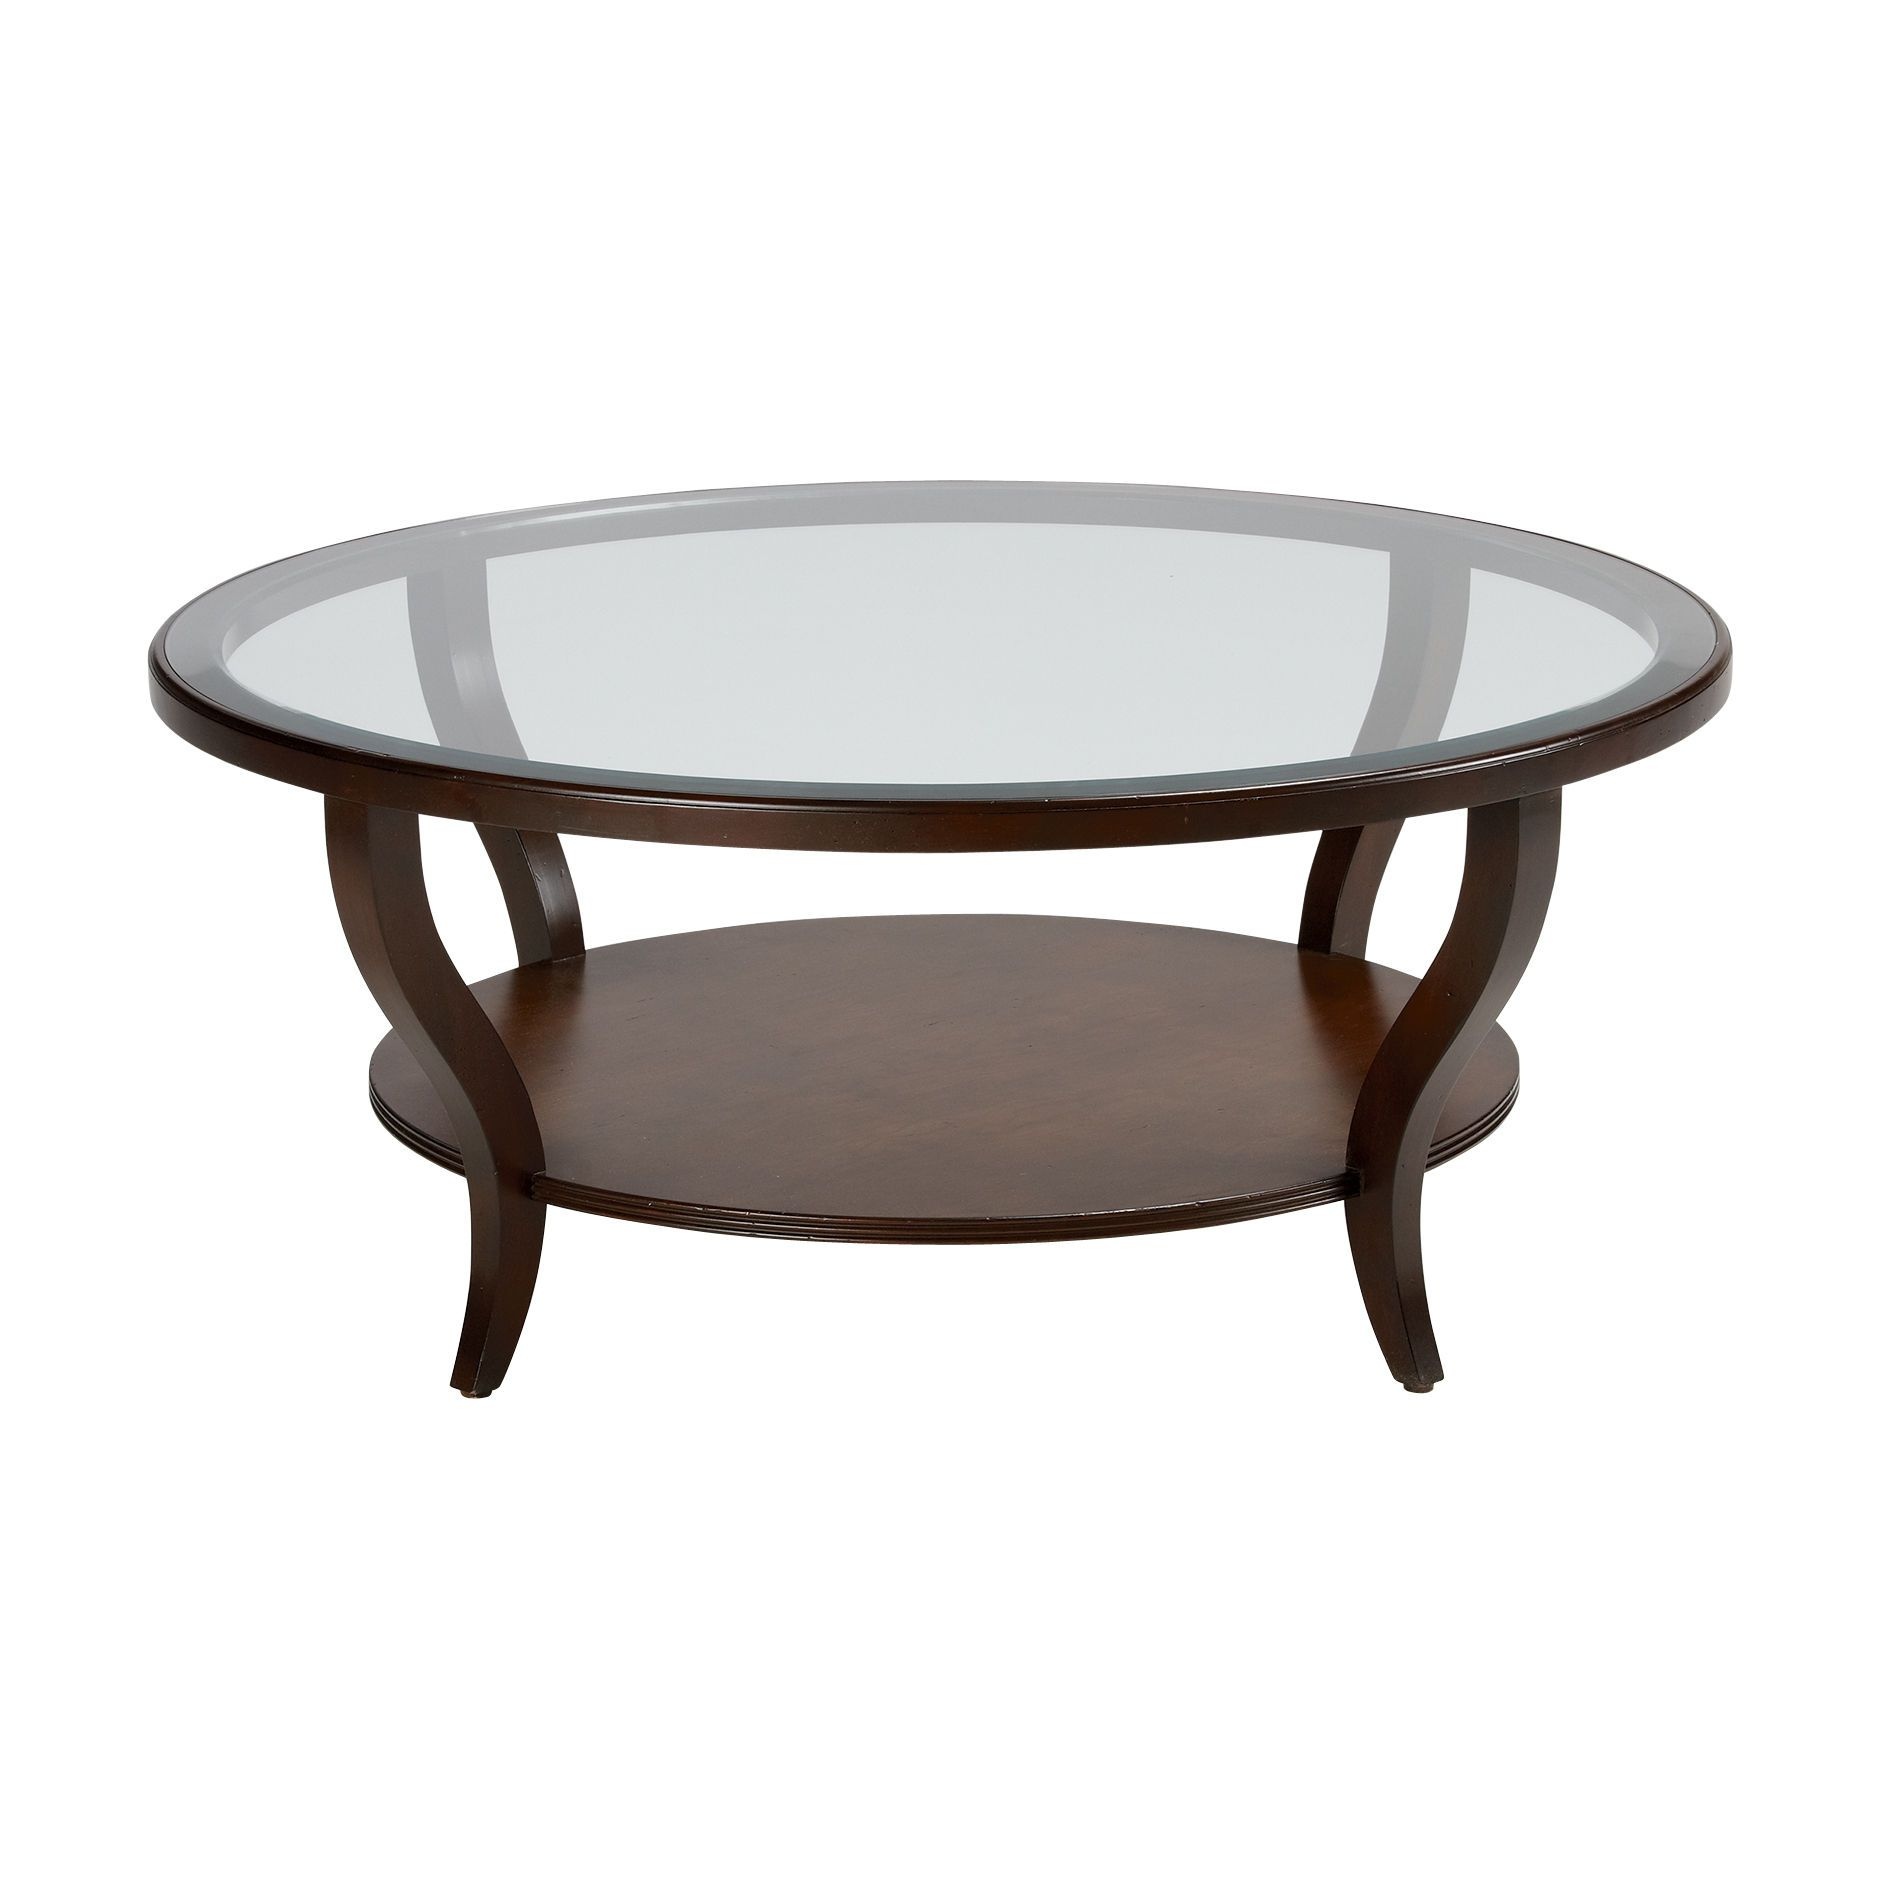 Ethan Allen Coffee Table Glass Top: Cirque Coffee Table - Ethan Allen US$1099 44""